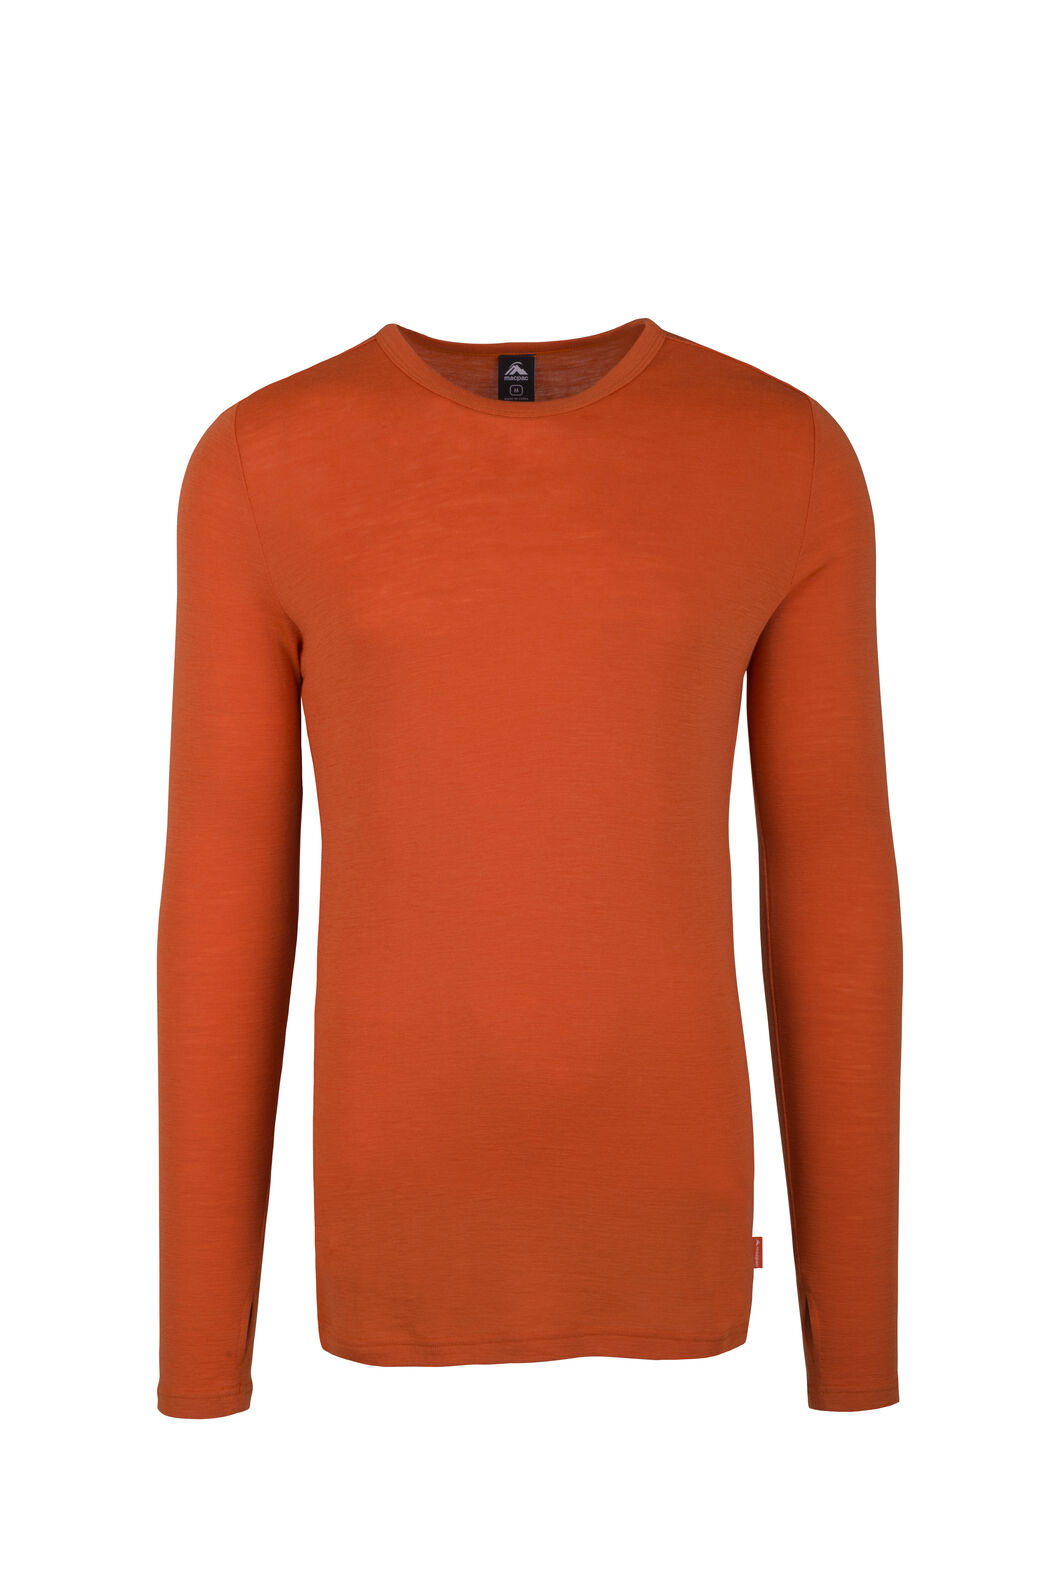 Macpac 220 Merino Long Sleeve Top - Men's, Burnt Orange, hi-res